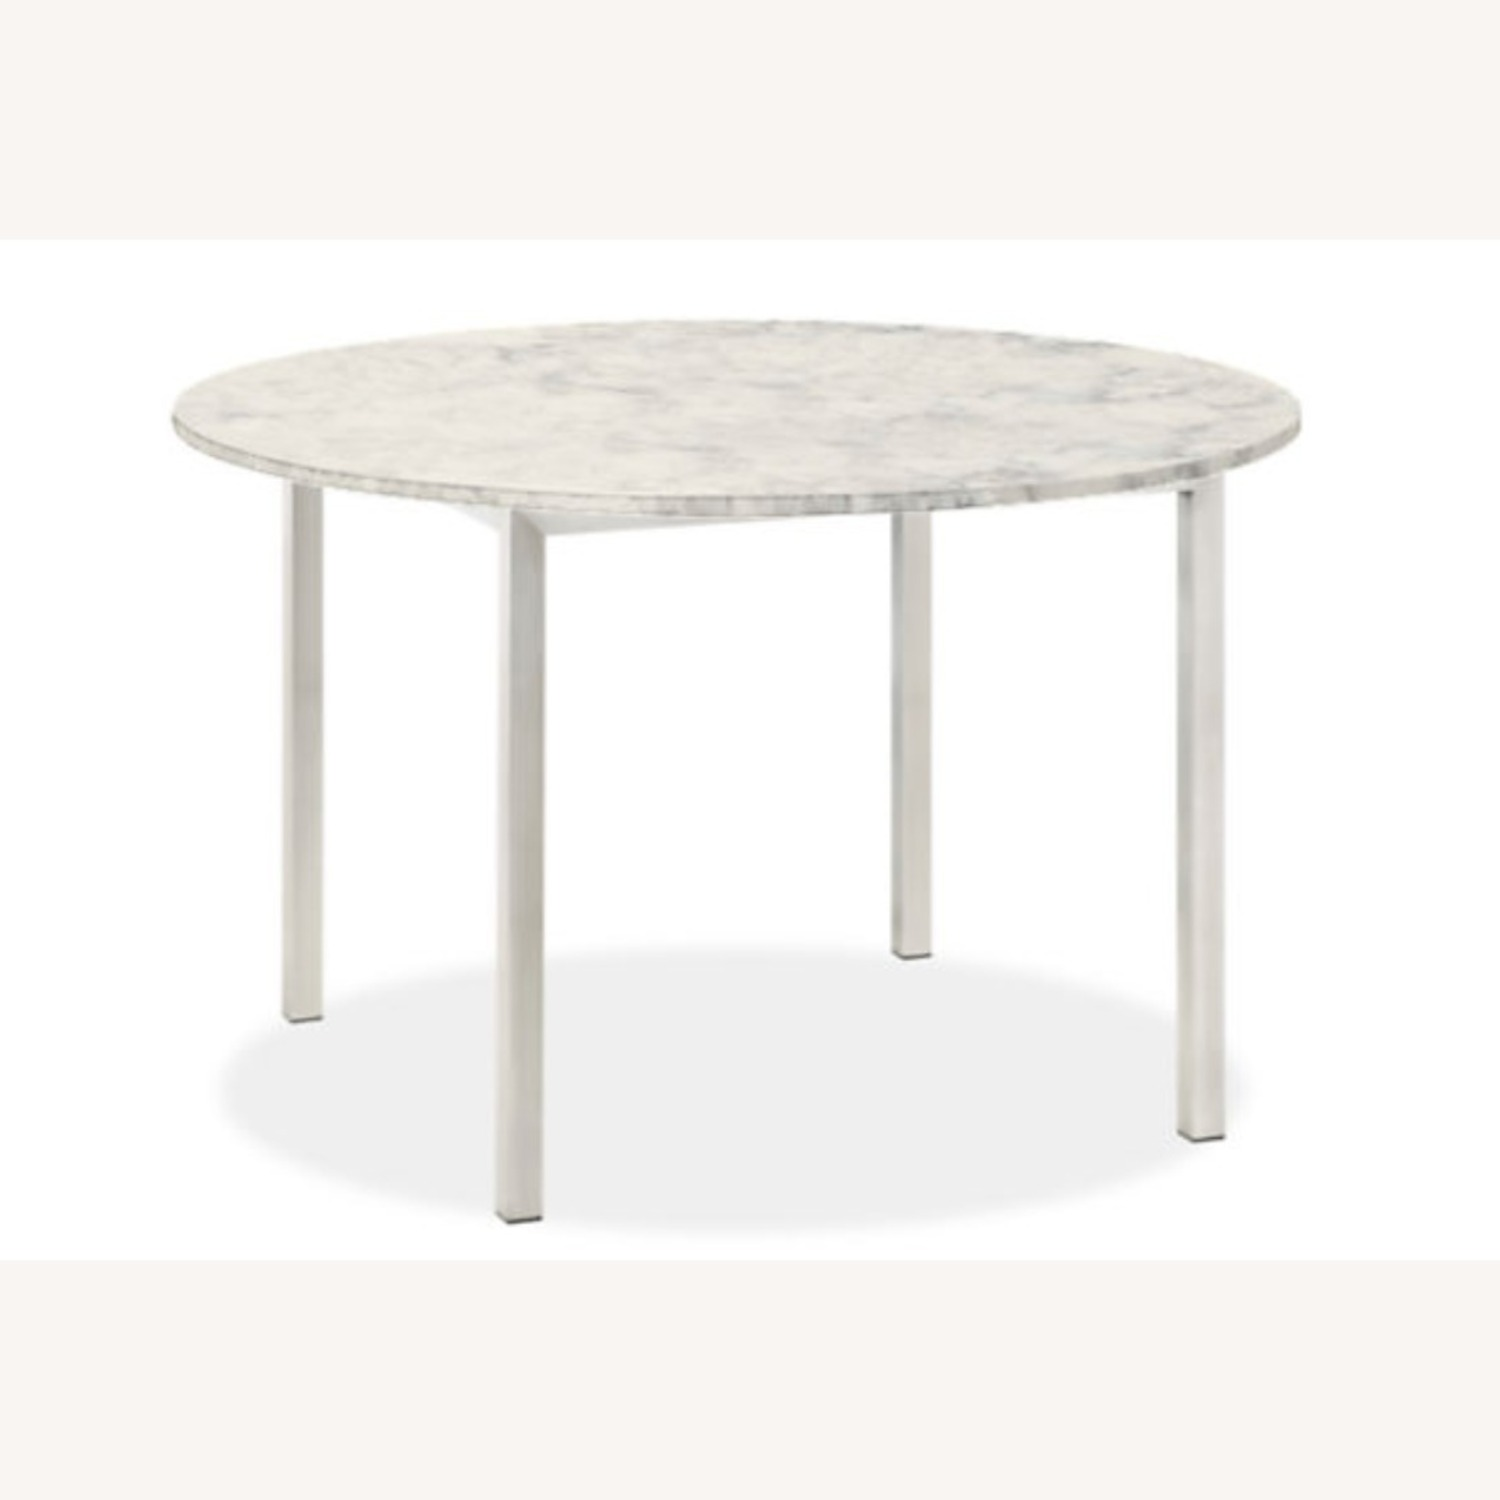 Room & Board Round Dining Table - image-7